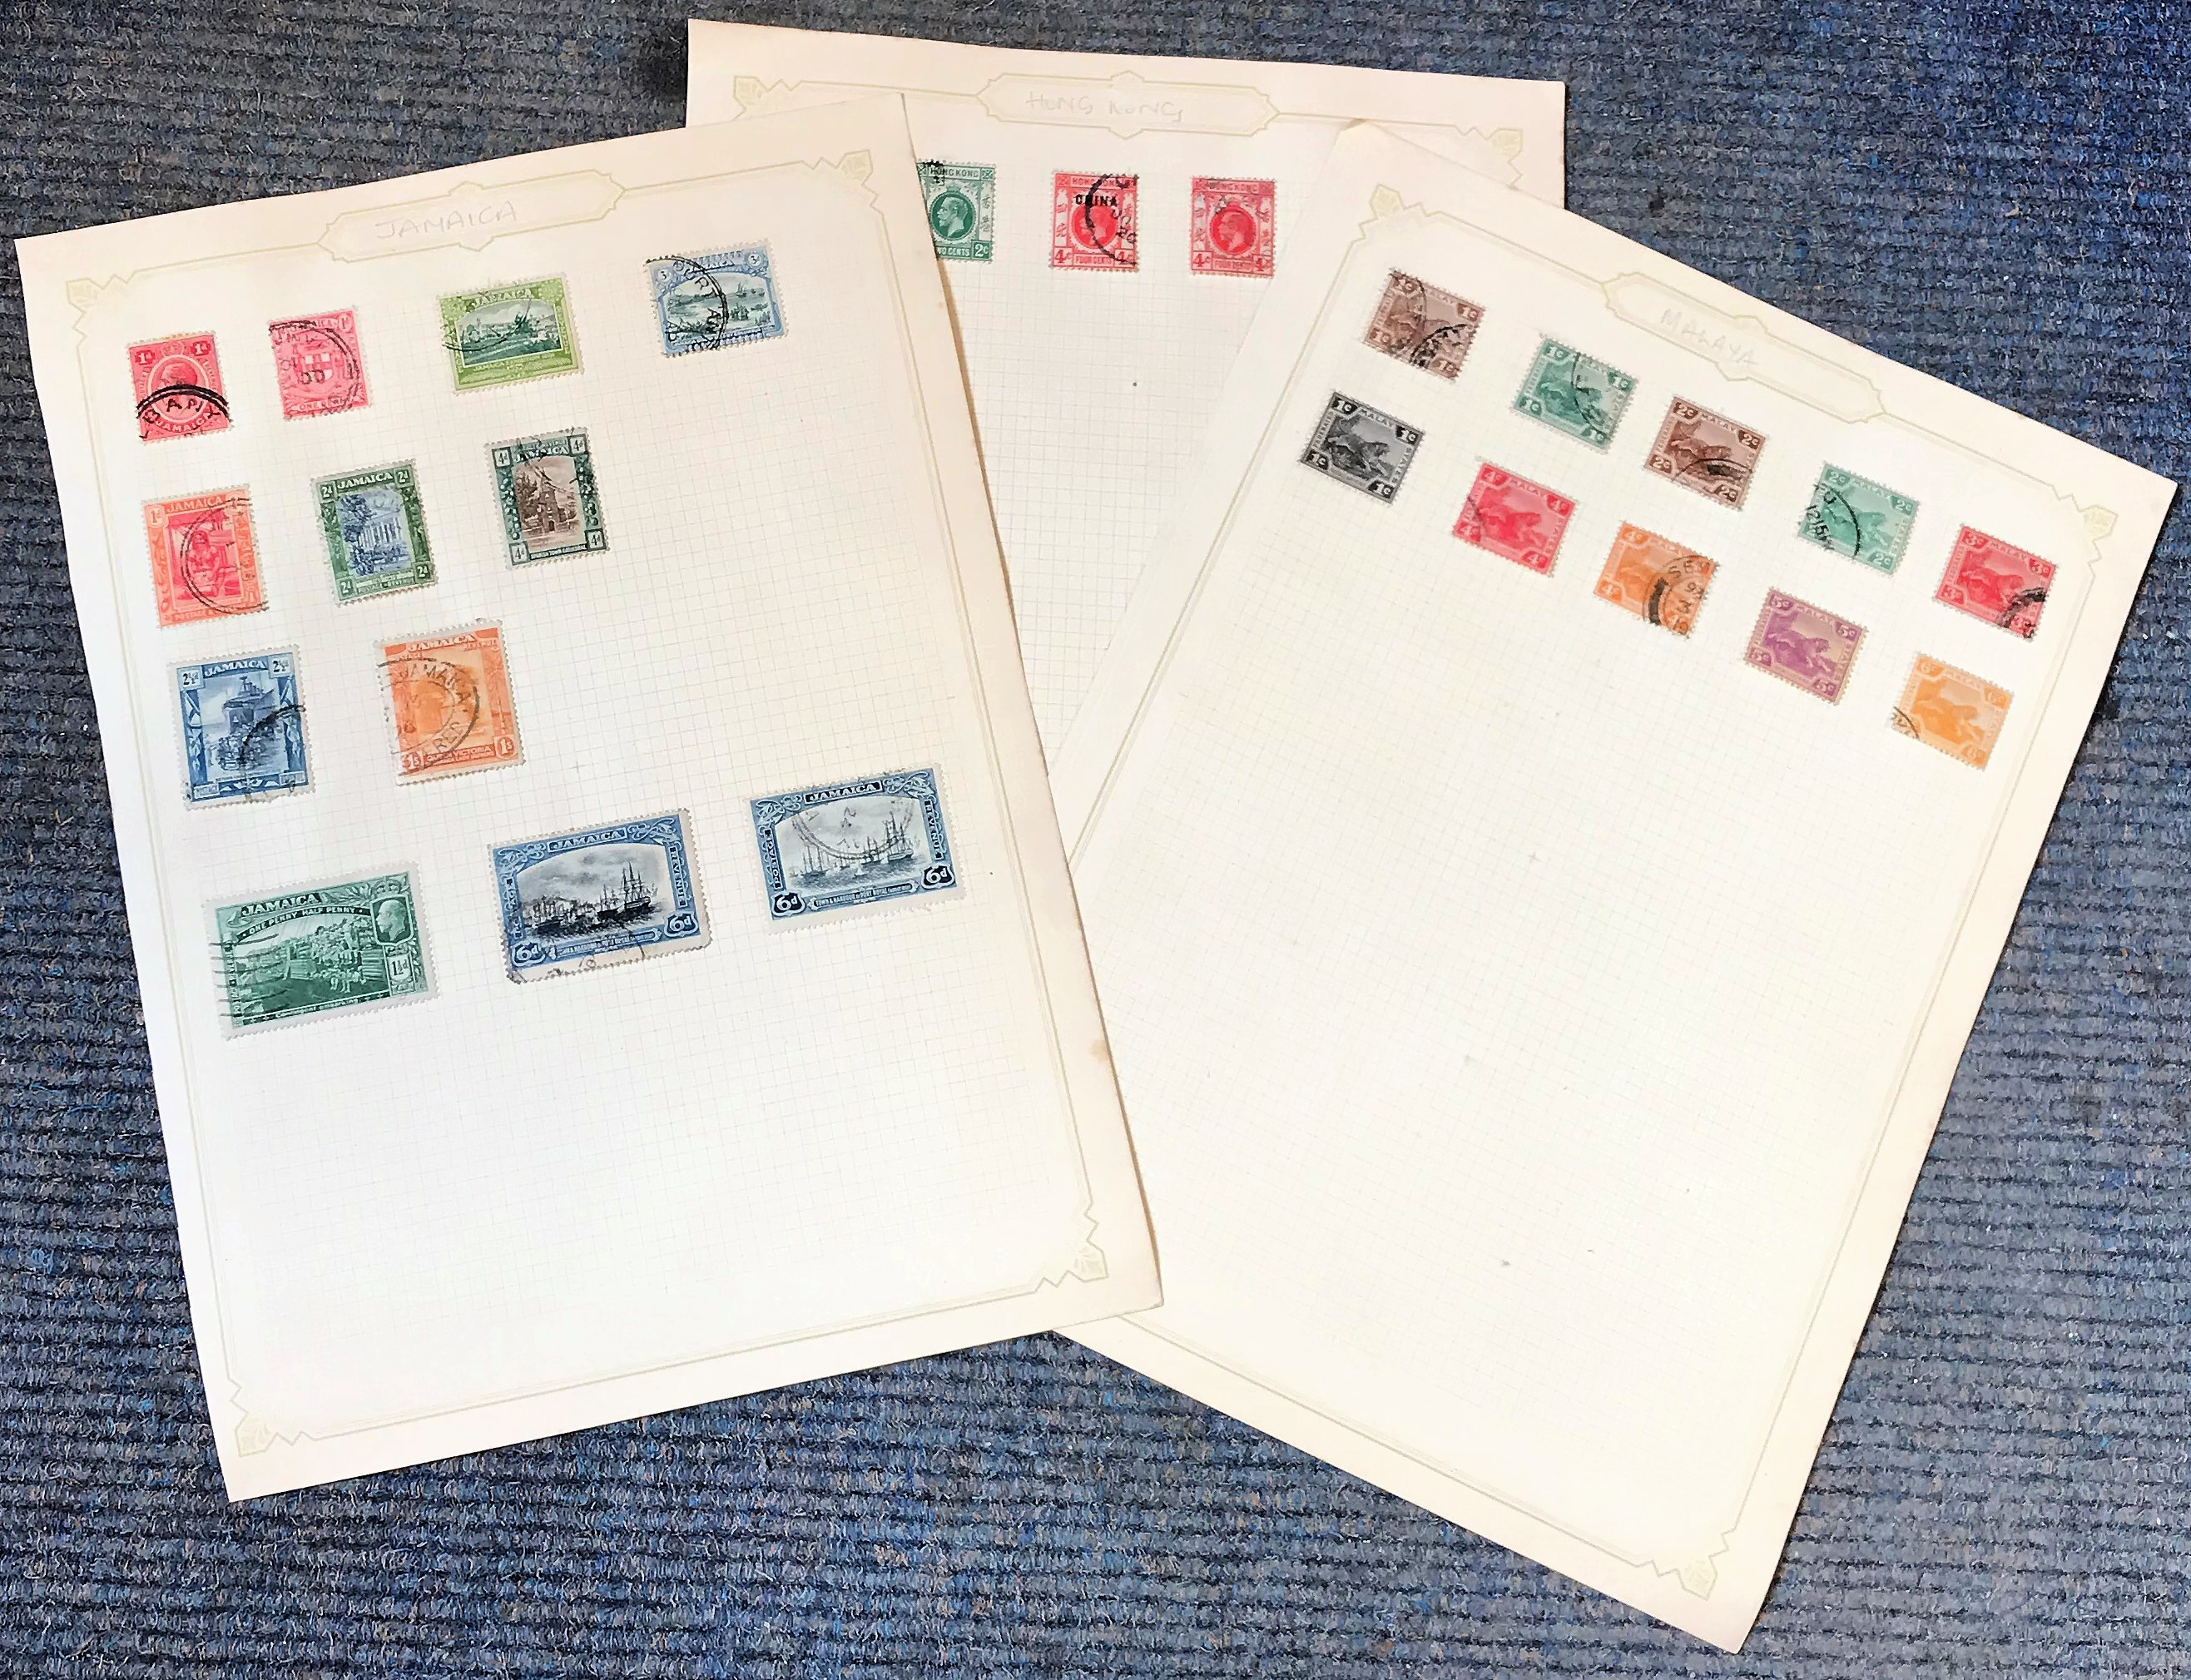 British Commonwealth collection on 3 loose album sheets early material countries include Hong